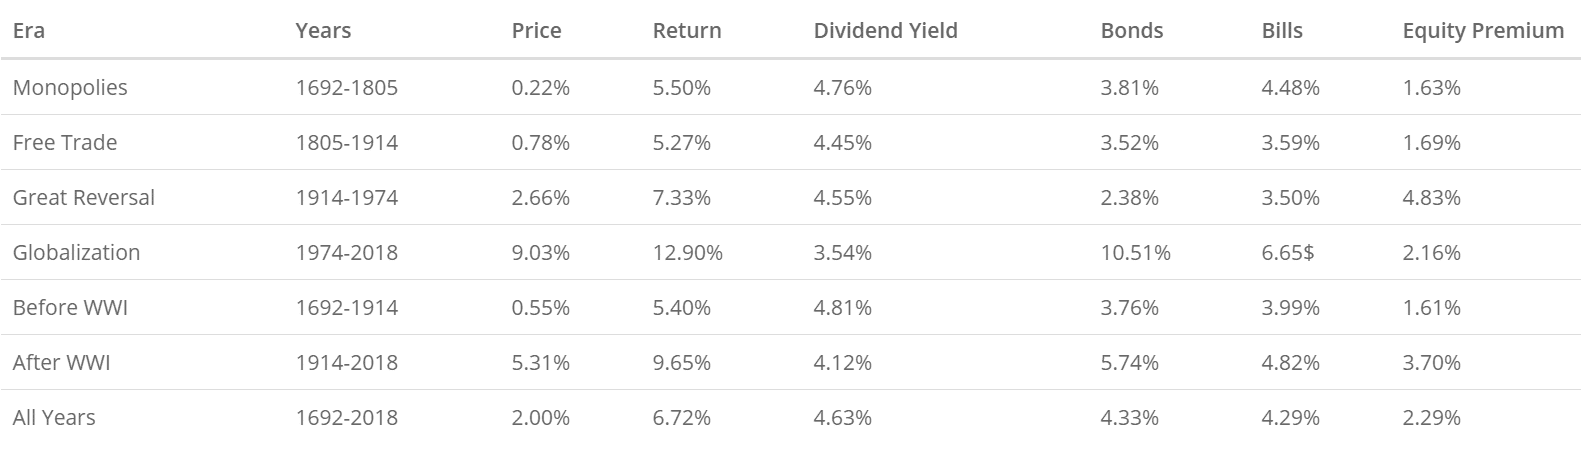 Table of returns